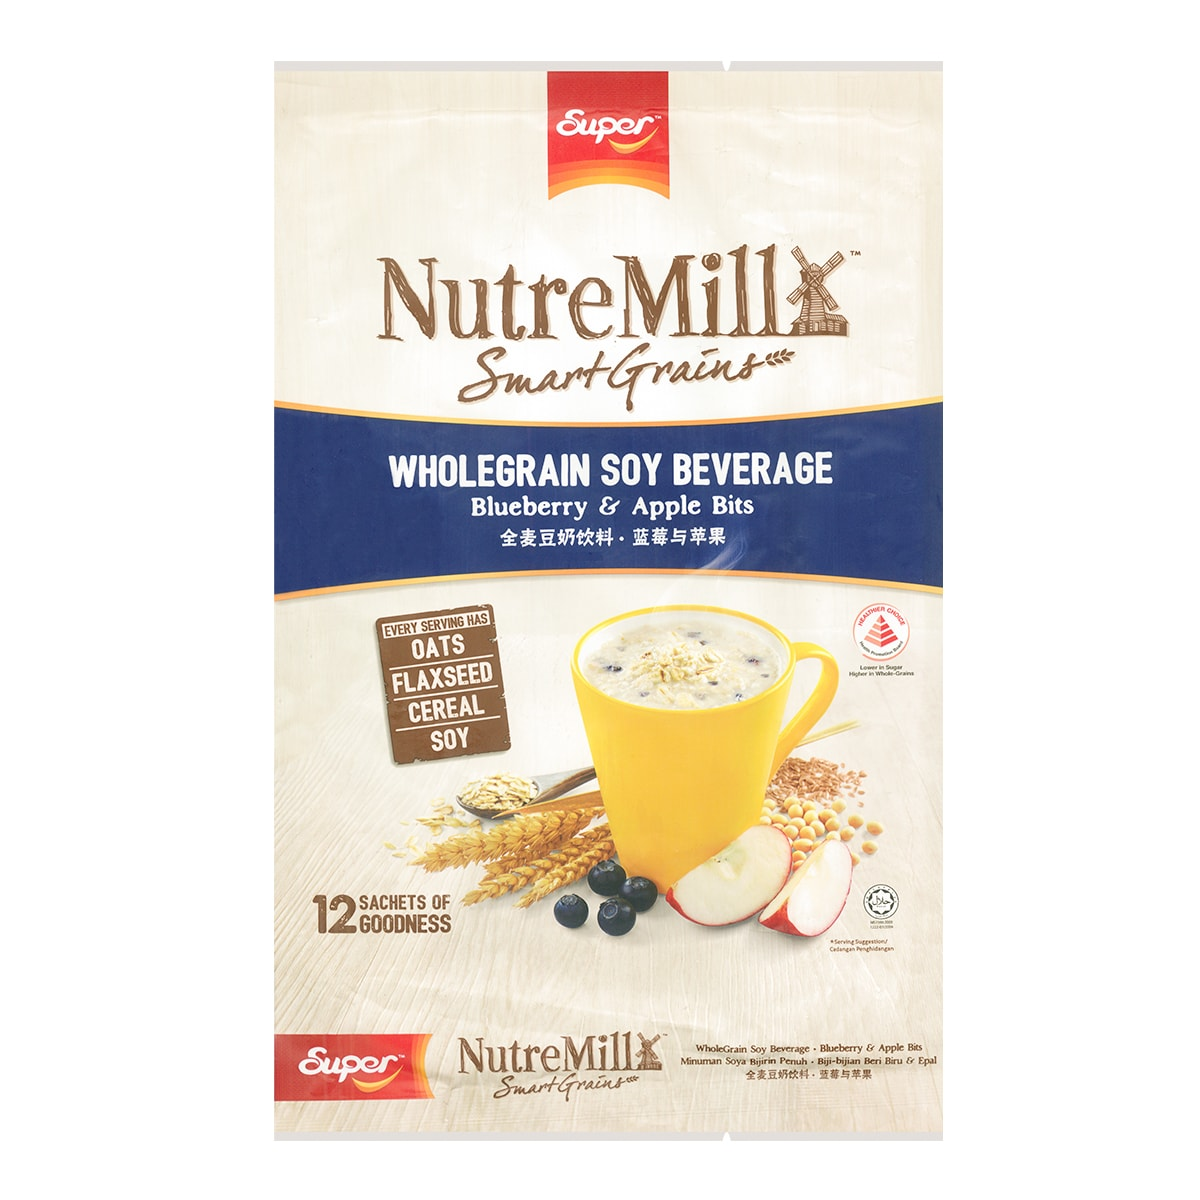 Super NutreMilk Wholegrain Soy Beverage Blueberry & Apple Bits